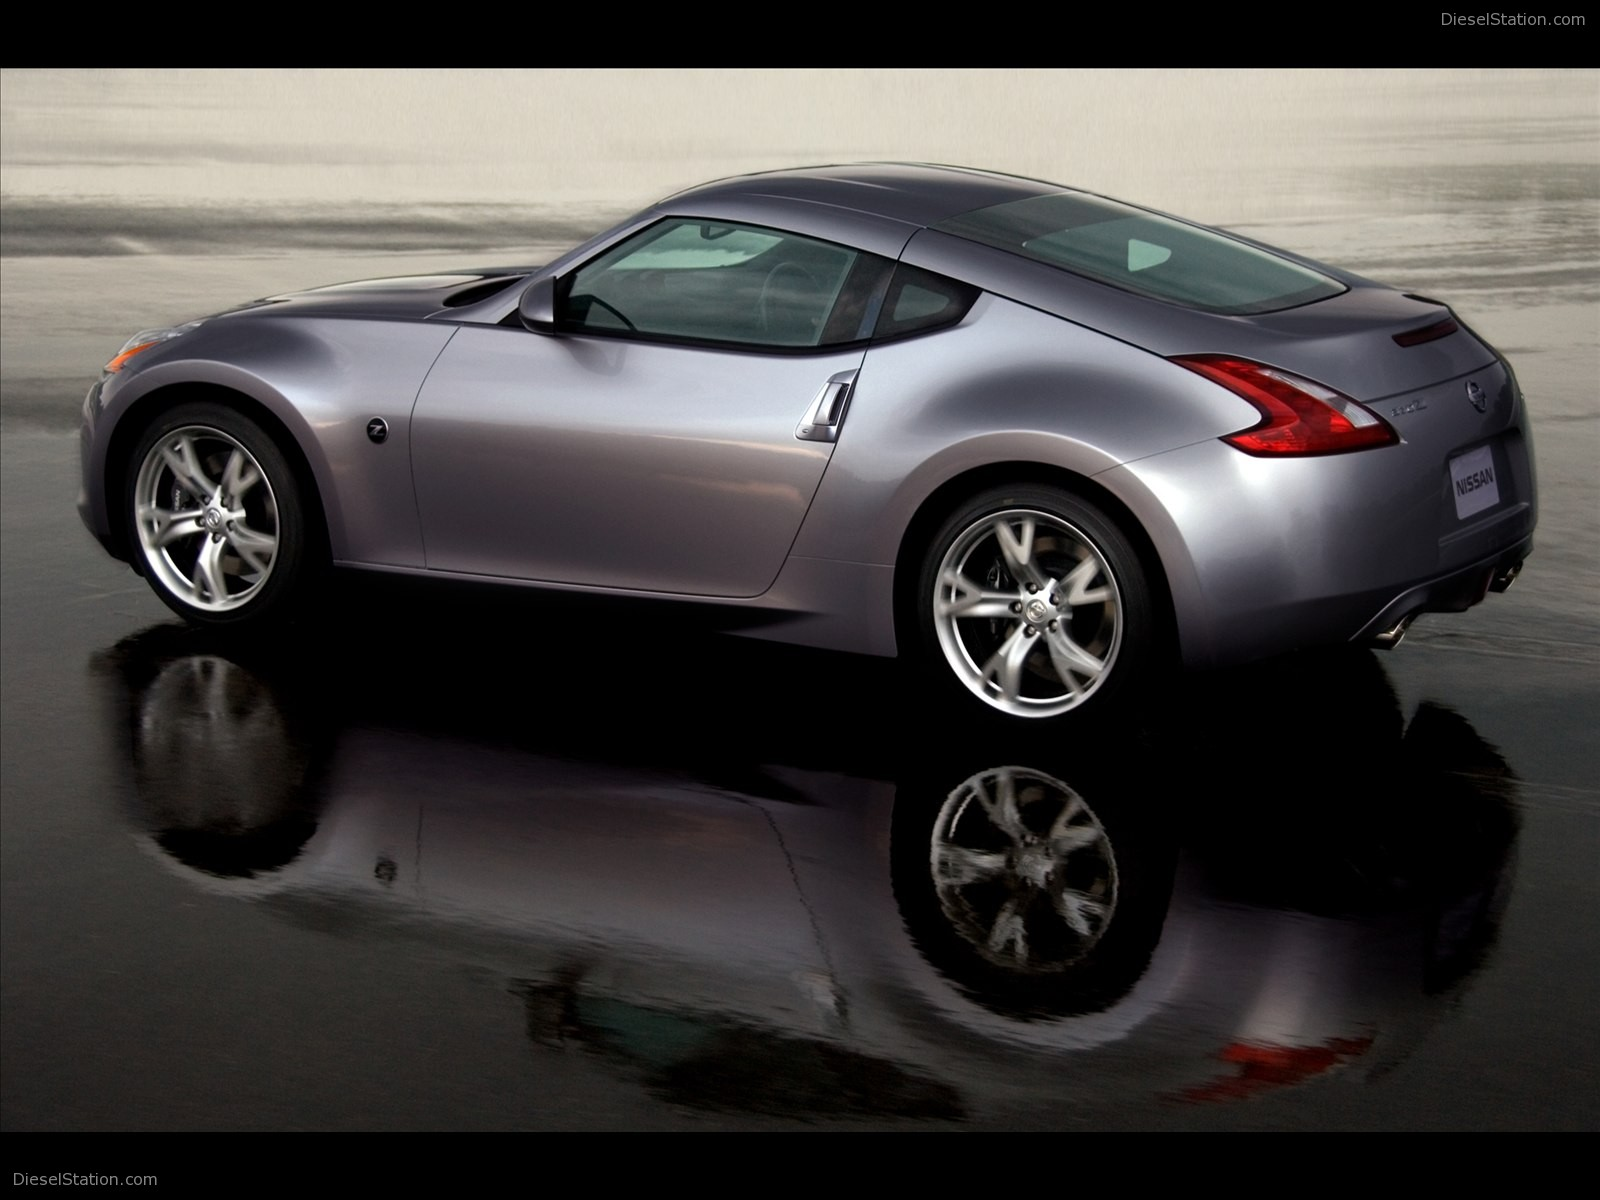 Nissan coupe photo - 2